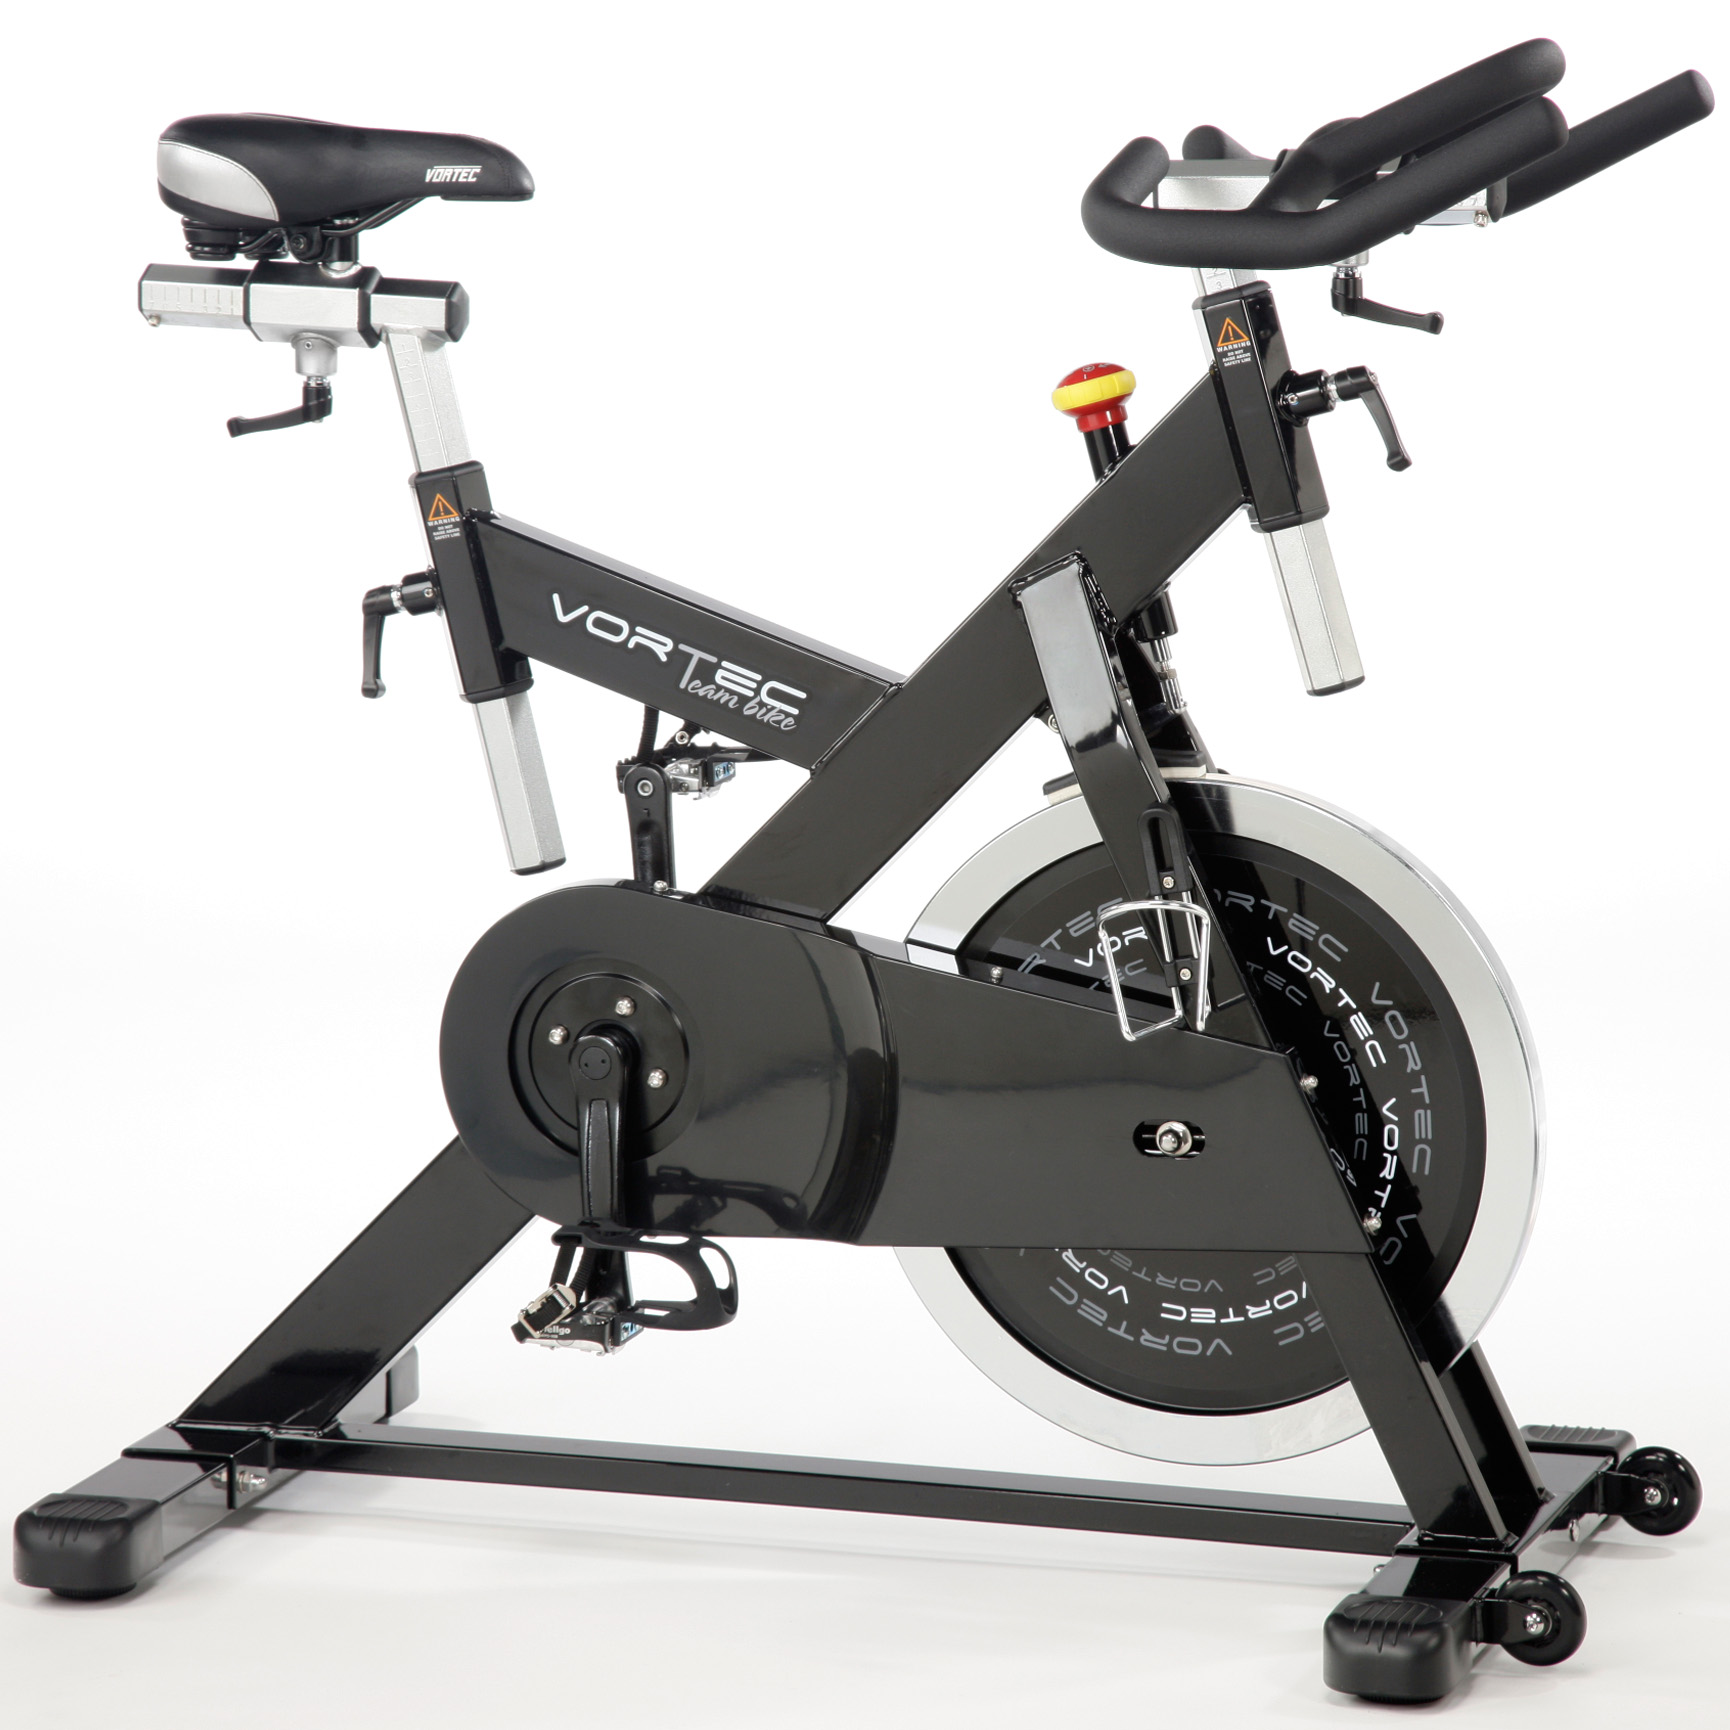 vortec x bike indoor cycling magazin. Black Bedroom Furniture Sets. Home Design Ideas